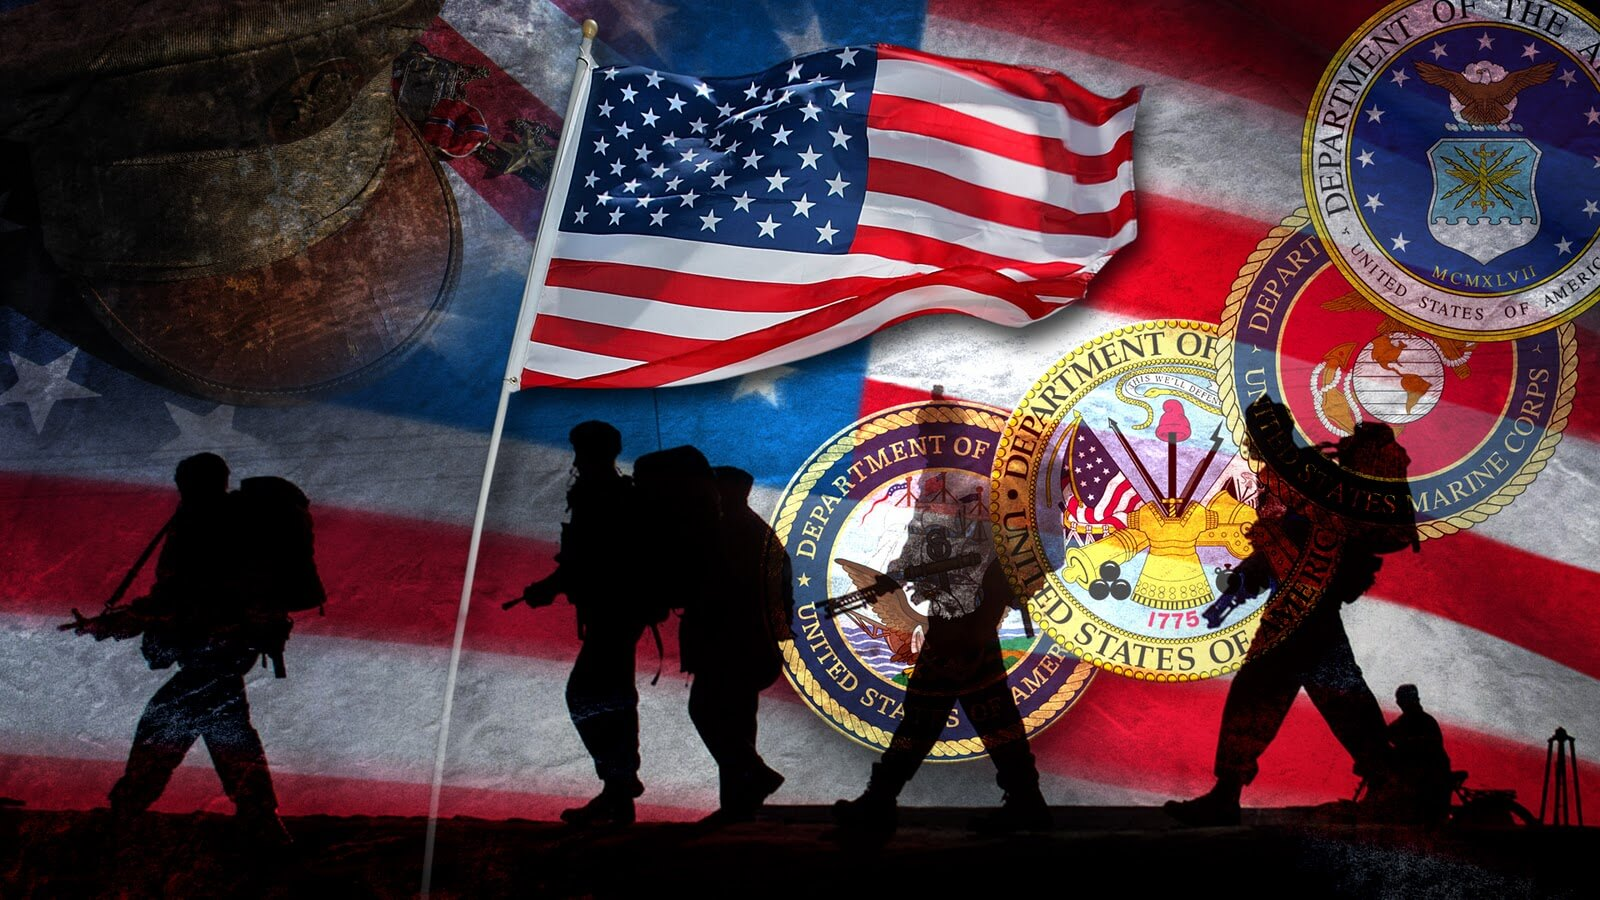 veterans day america usa latest hd wallpaper